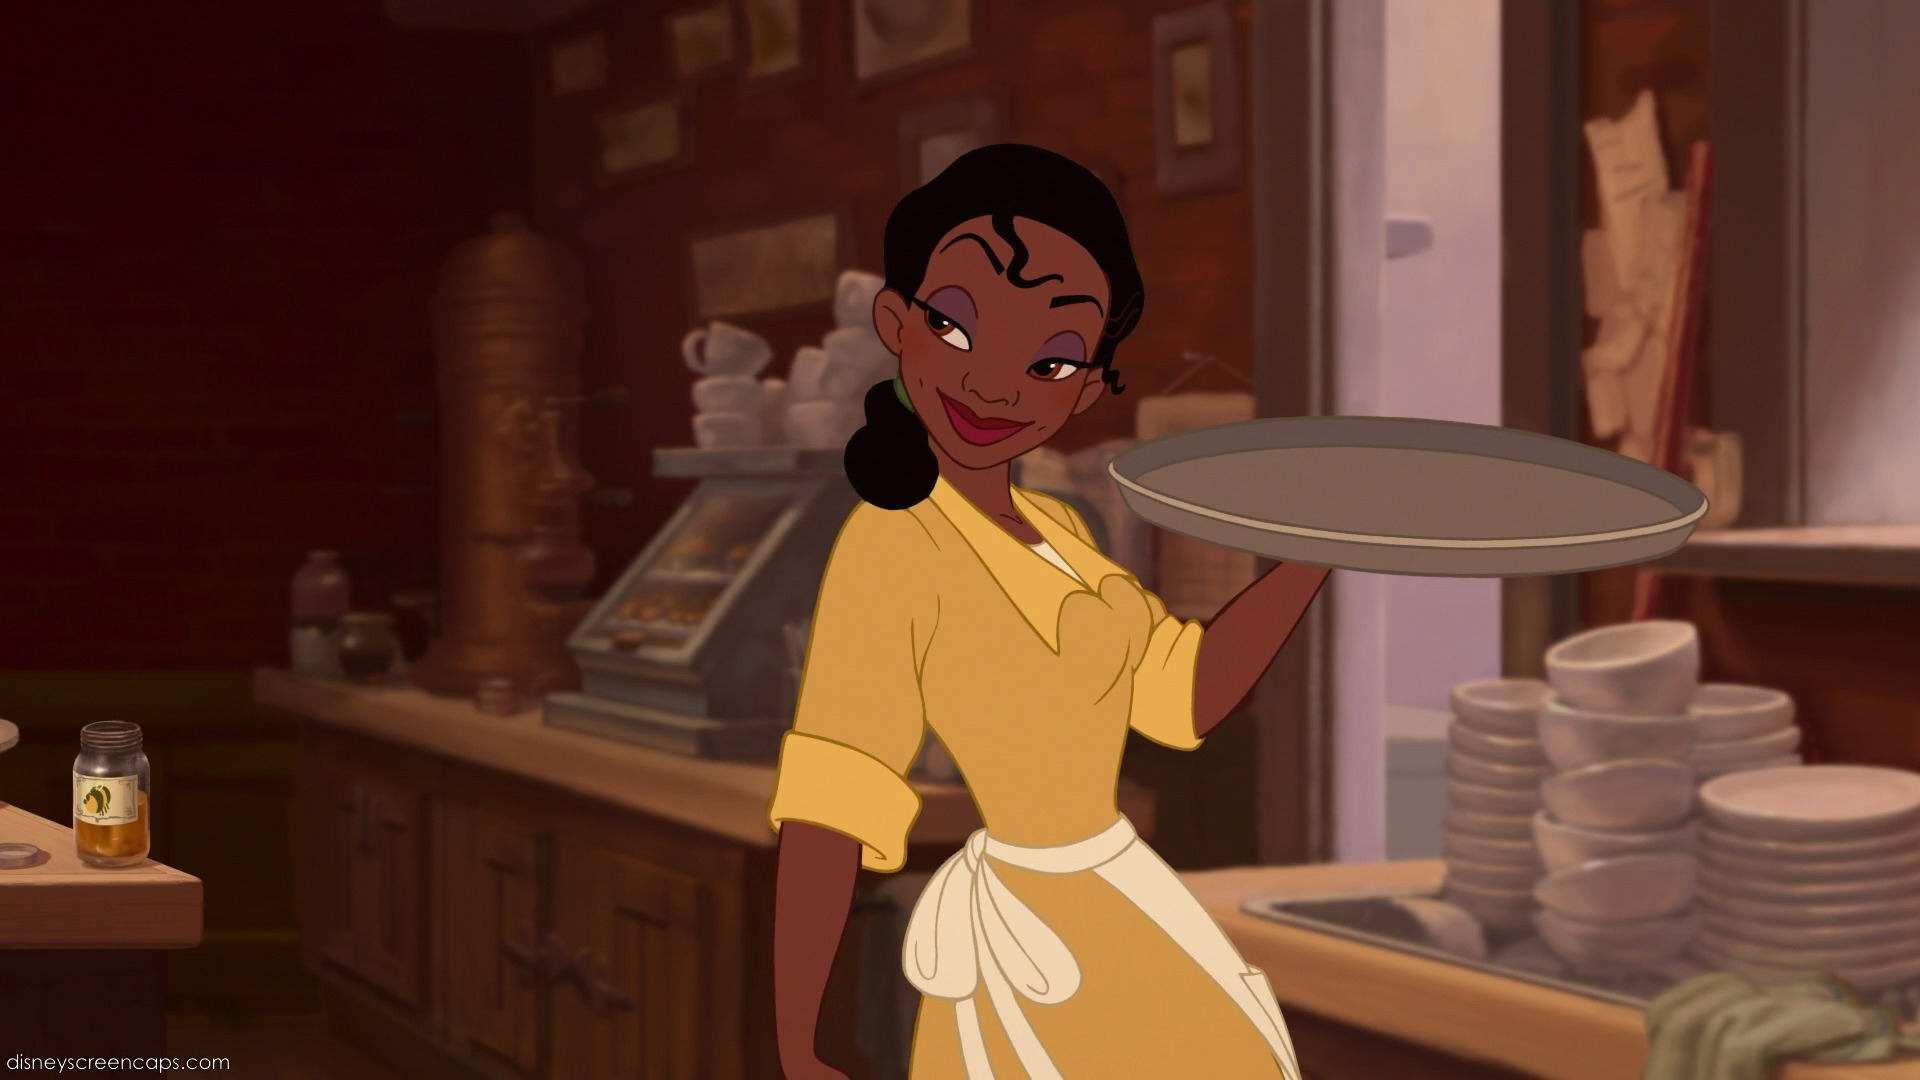 Image result for tiana princess and the frog waitress